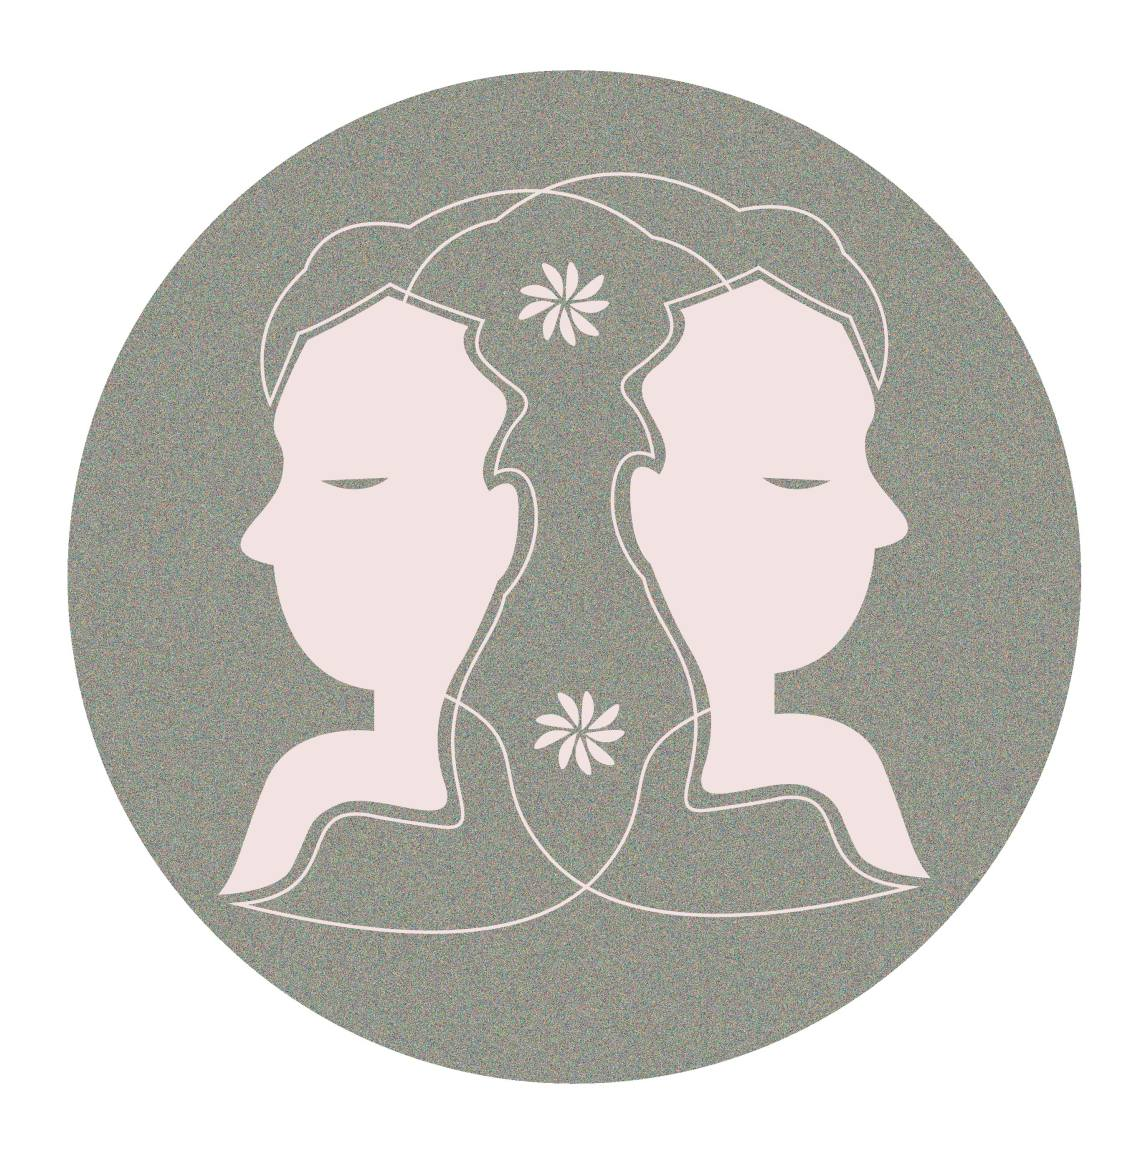 Find the daily horoscope for Gemini zodiac signs for   September 7, 2021.